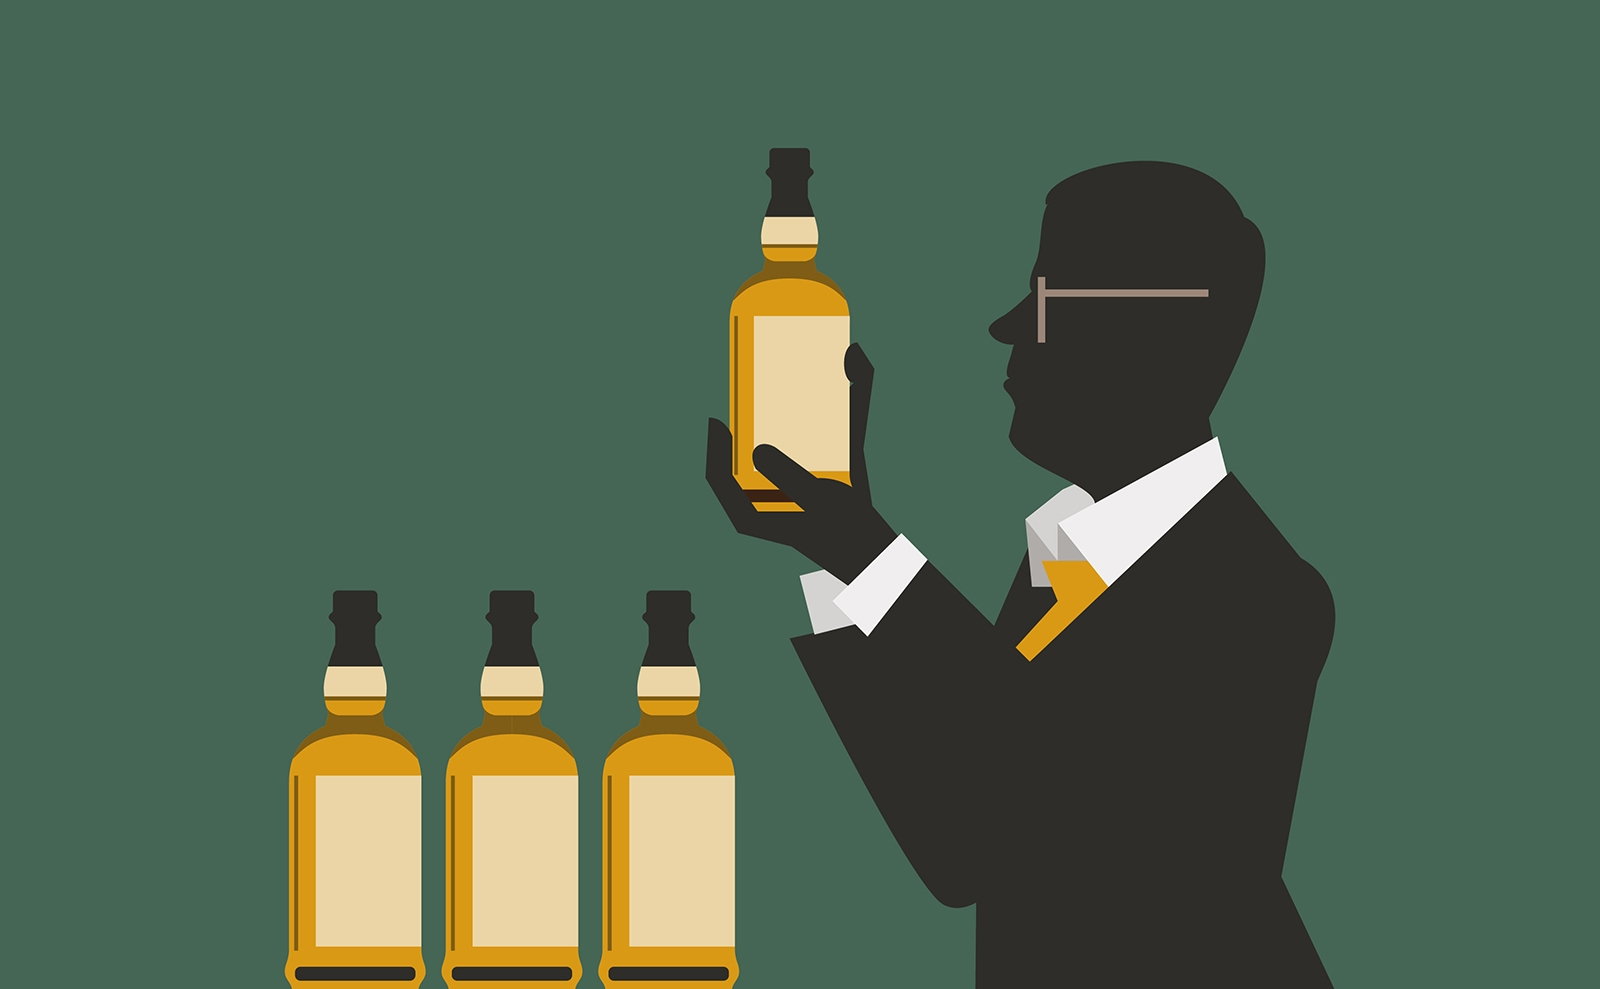 Balvenie Five Crafts illustration detail of glasses and man